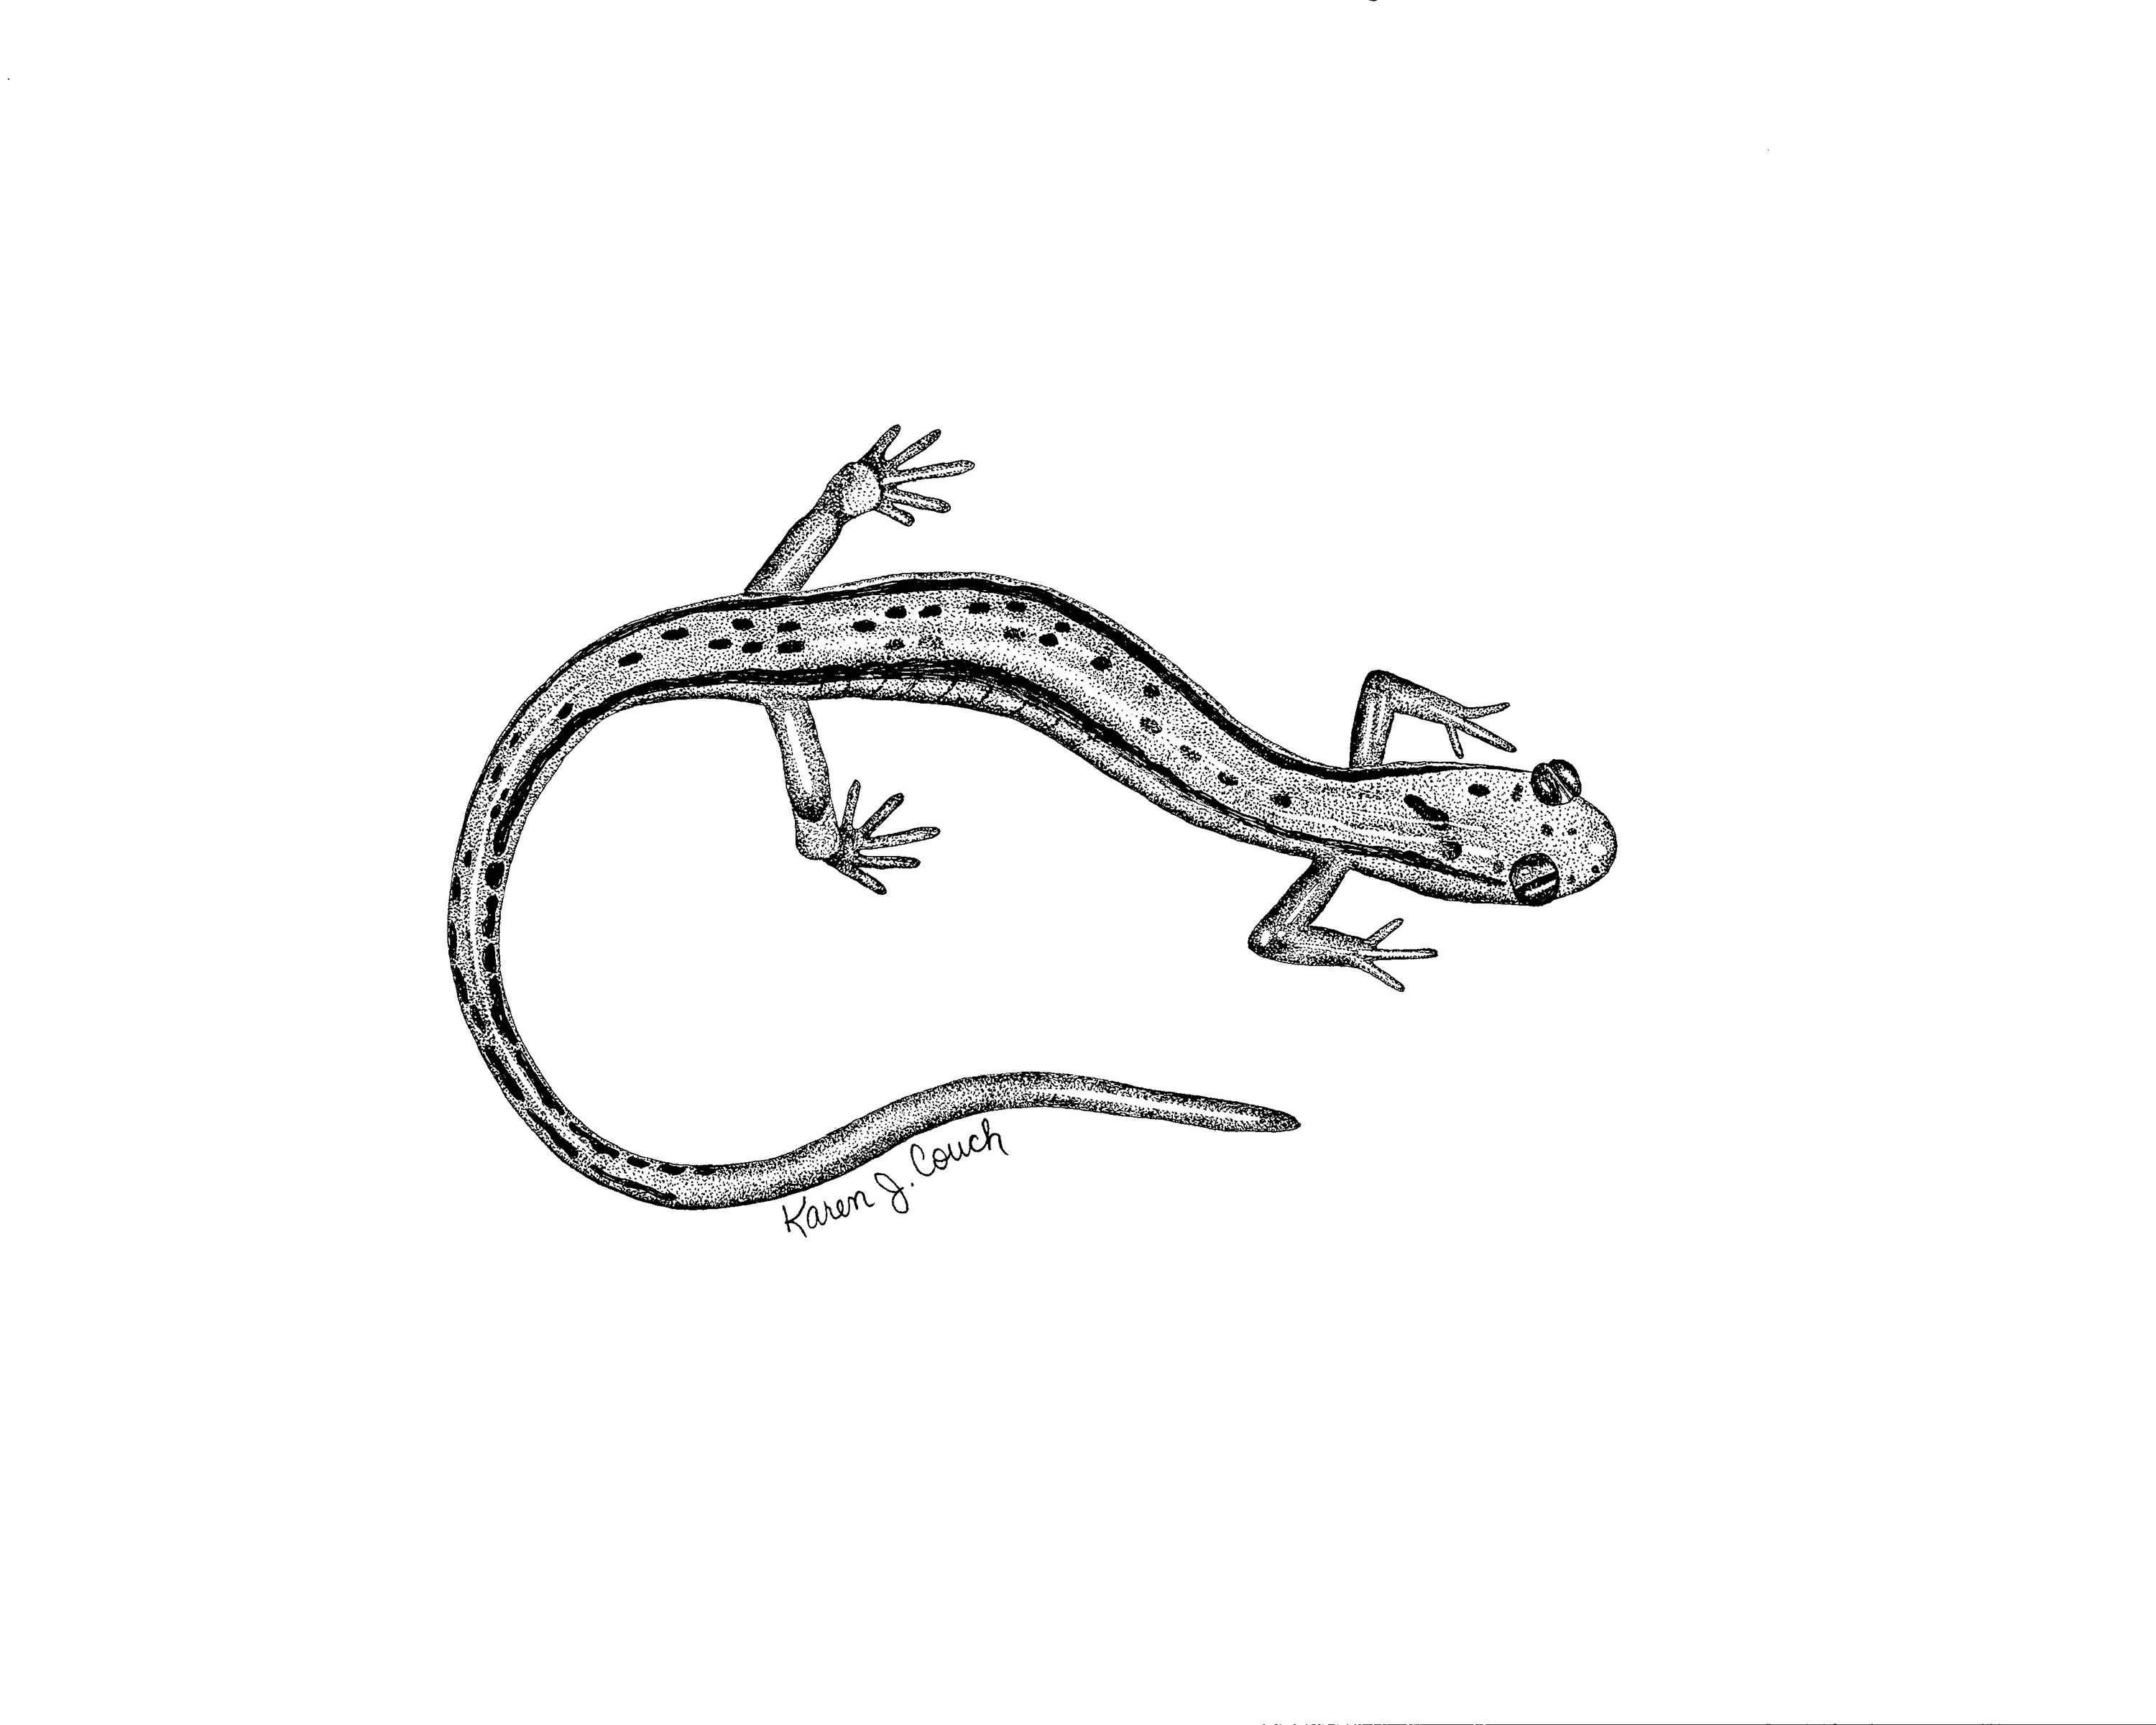 Line Art Black And White : File line art black and white drawing two lined salamander